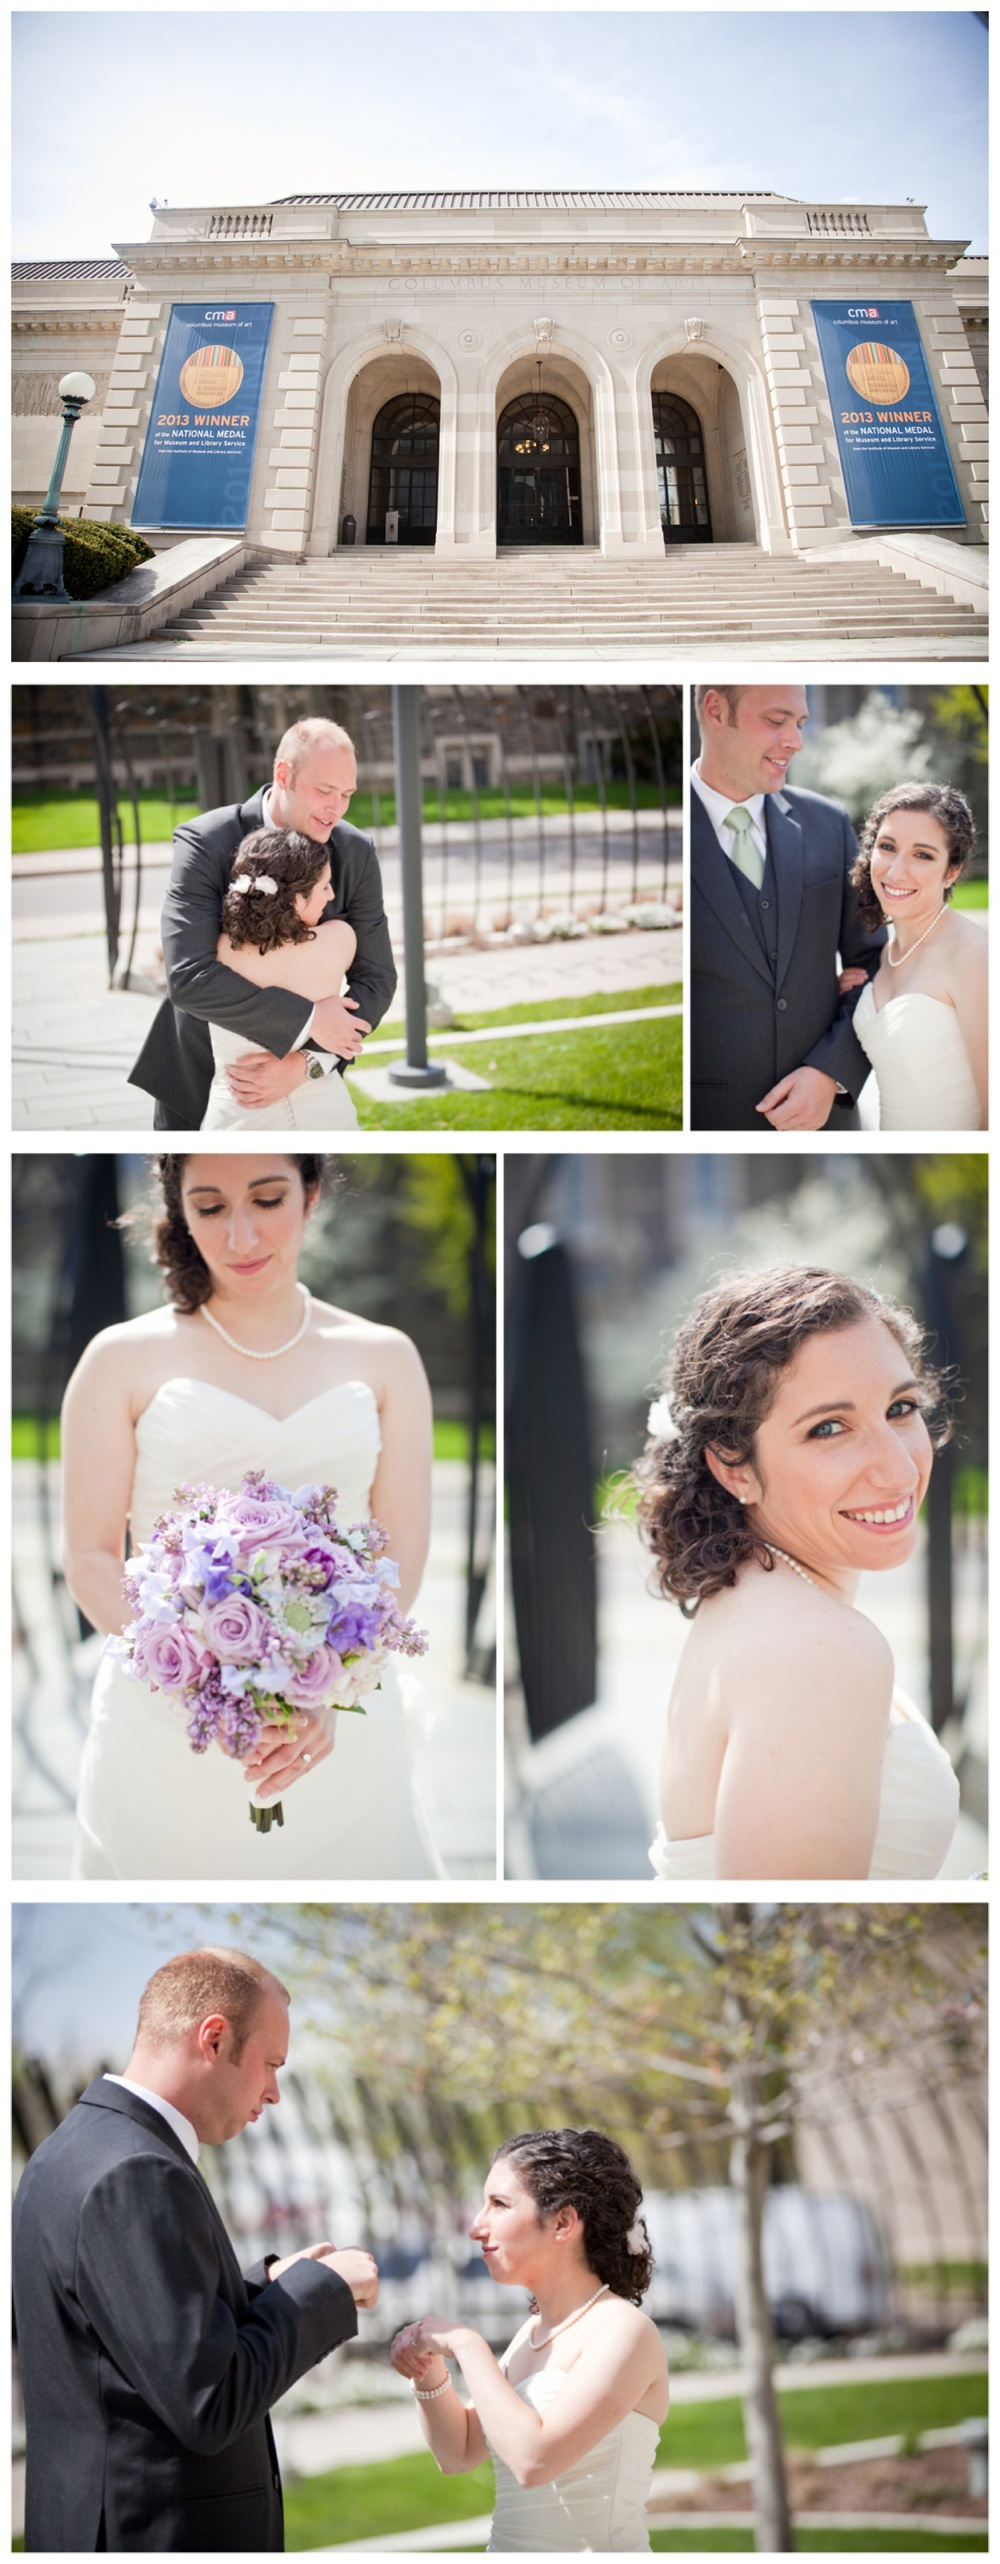 Ann + Tristan opted for a first look ; I trust any couple that fist-pumps before their wedding.